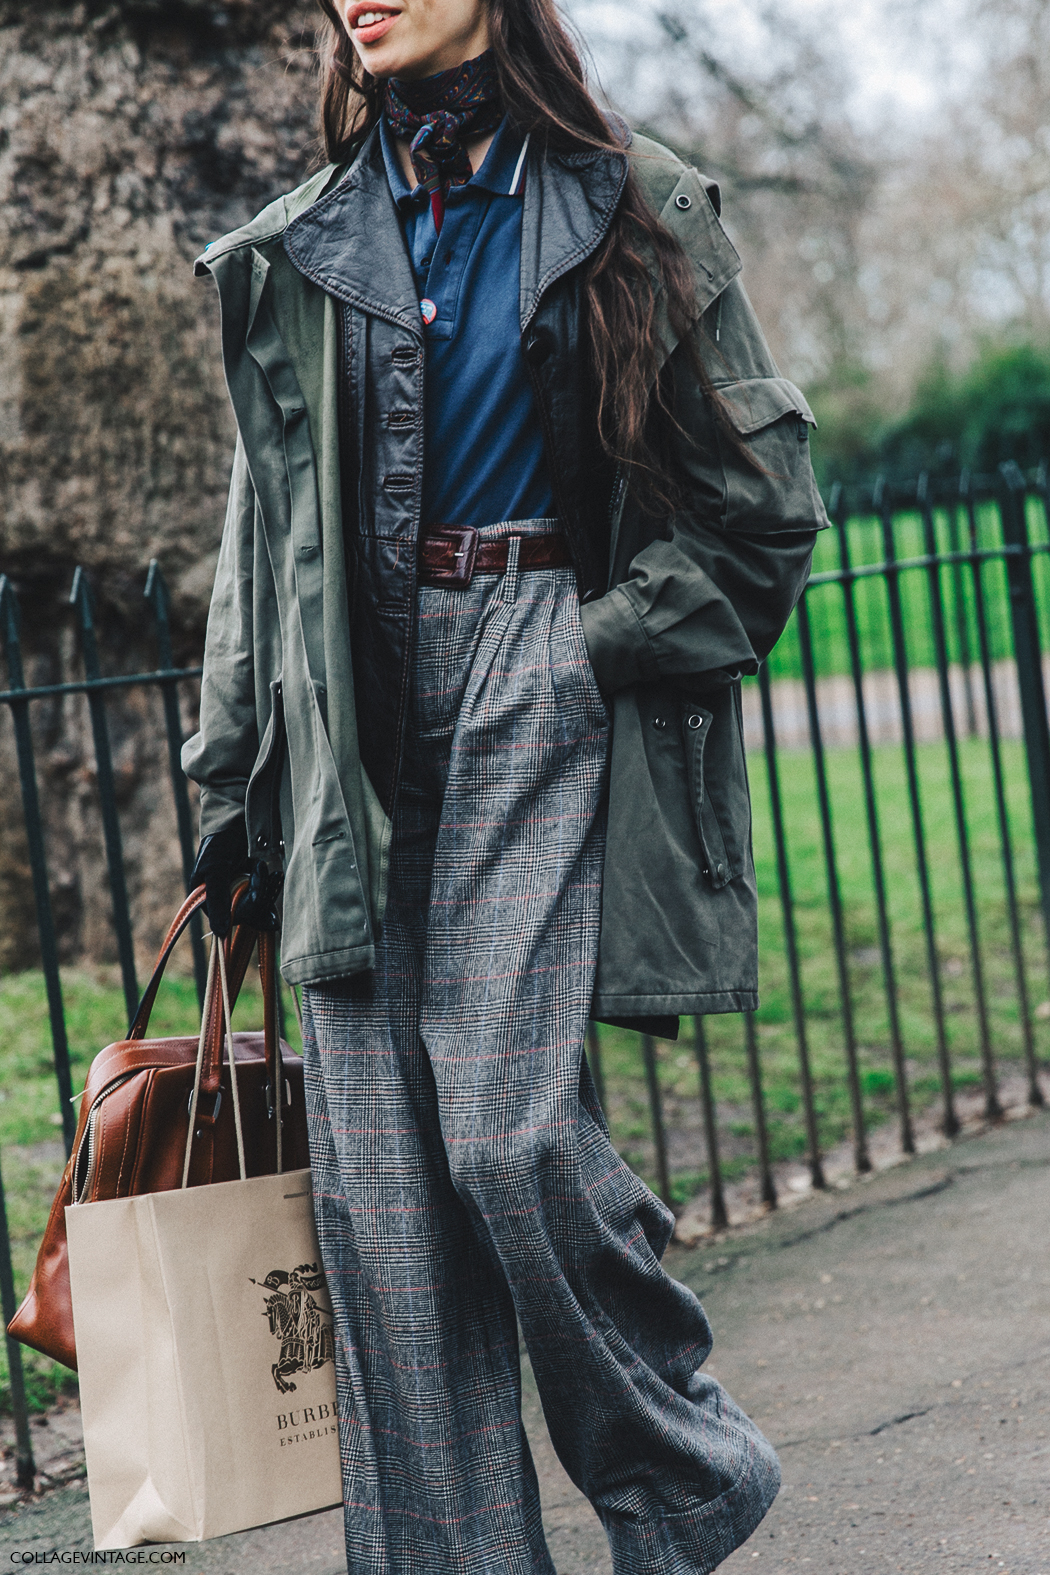 LFW-London_Fashion_Week_Fall_16-Street_Style-Collage_Vintage-Model-Burberry-Tweed_Trousers-Parka-4